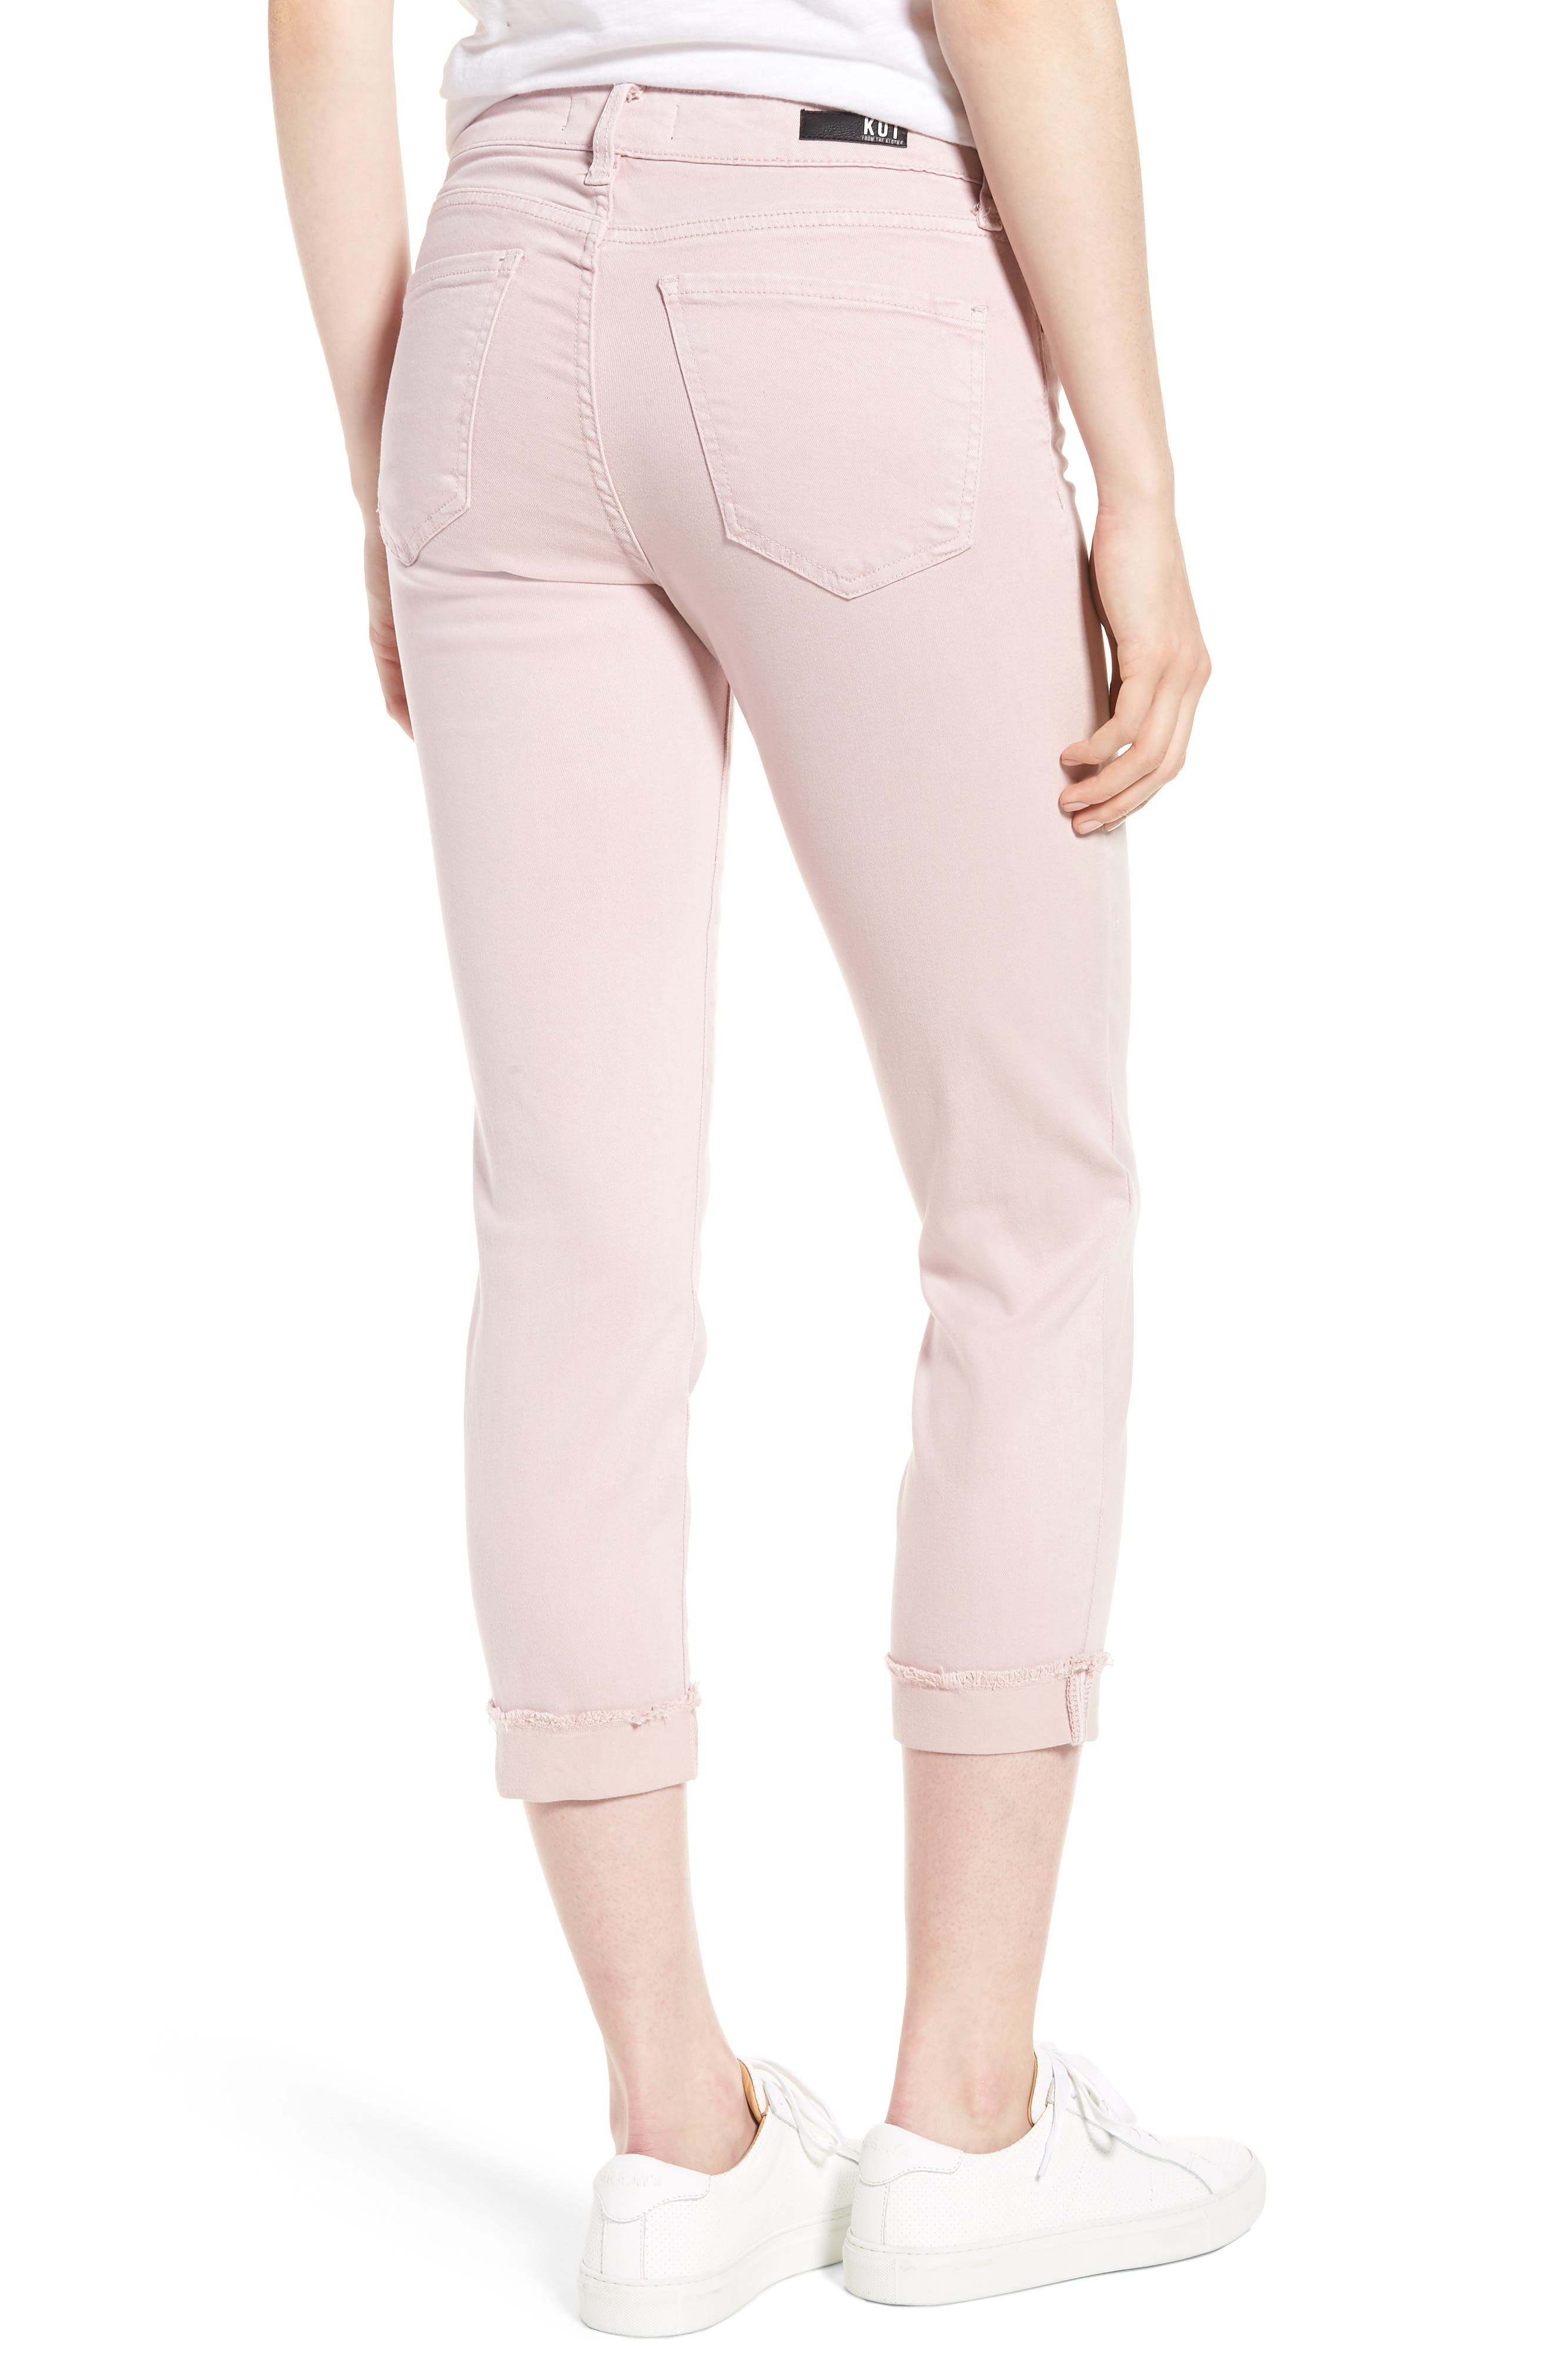 KUT from the Kloth Amy Crop Skinny Jeans,                             Alternate thumbnail 2, color,                             682